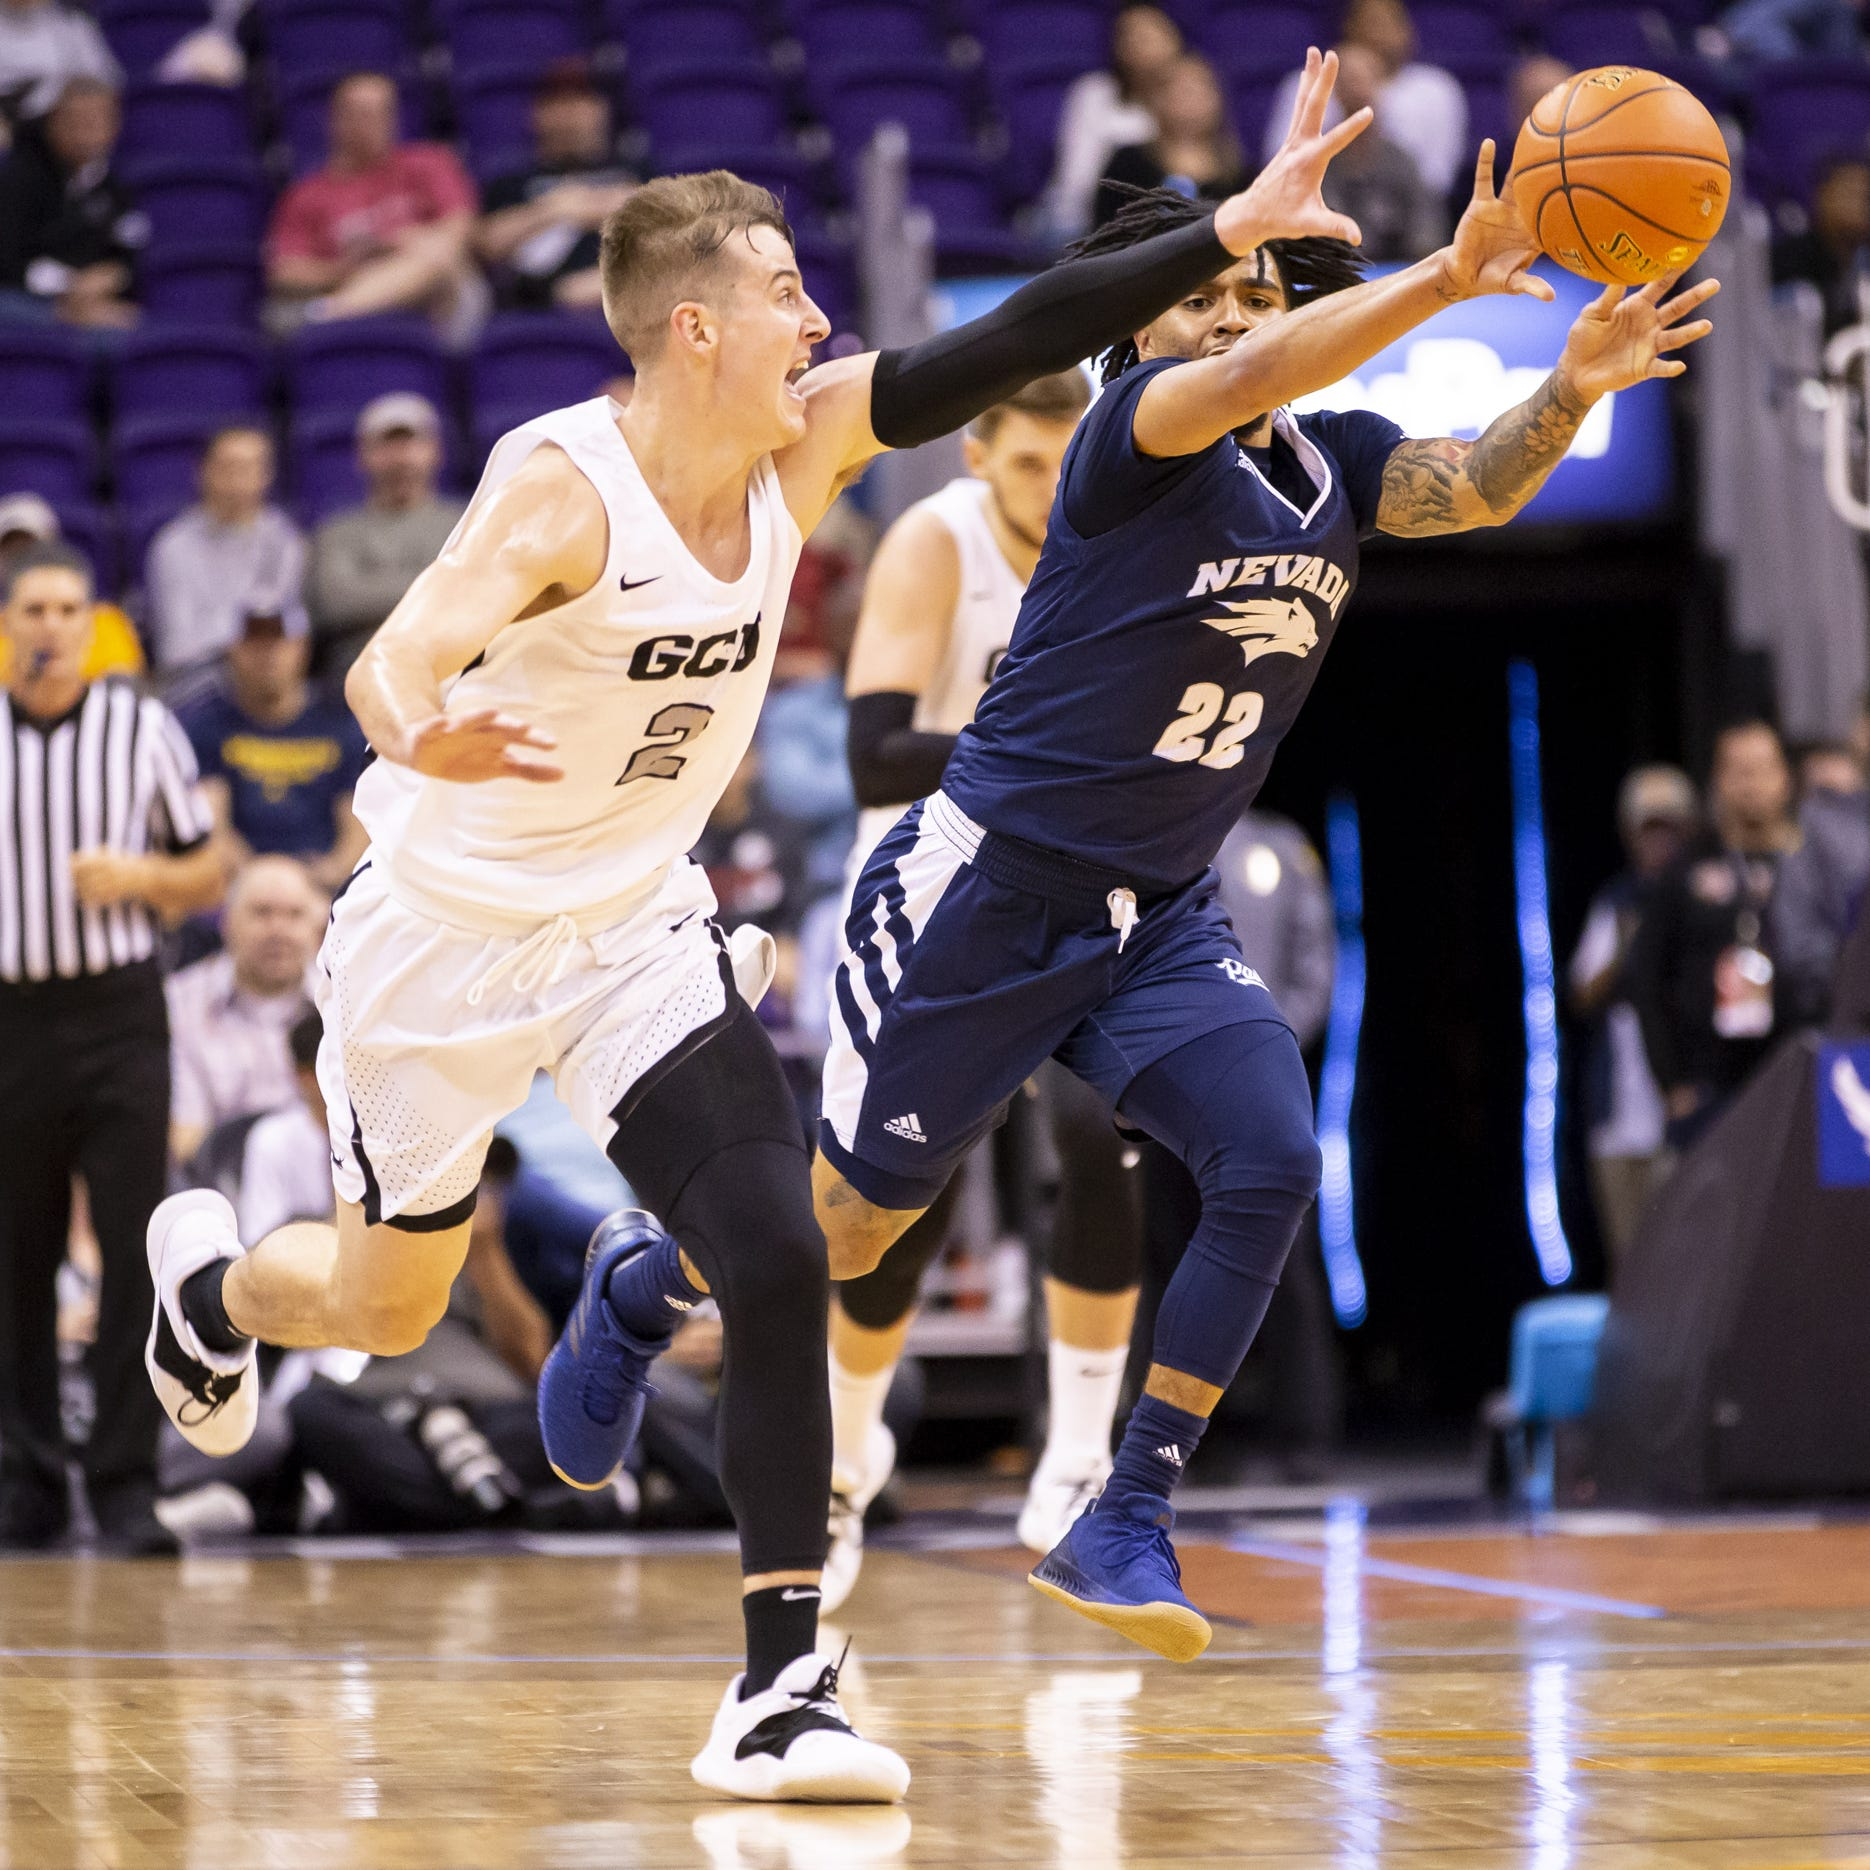 GCU basketball falls to No. 6 Nevada after building early, double-digit lead